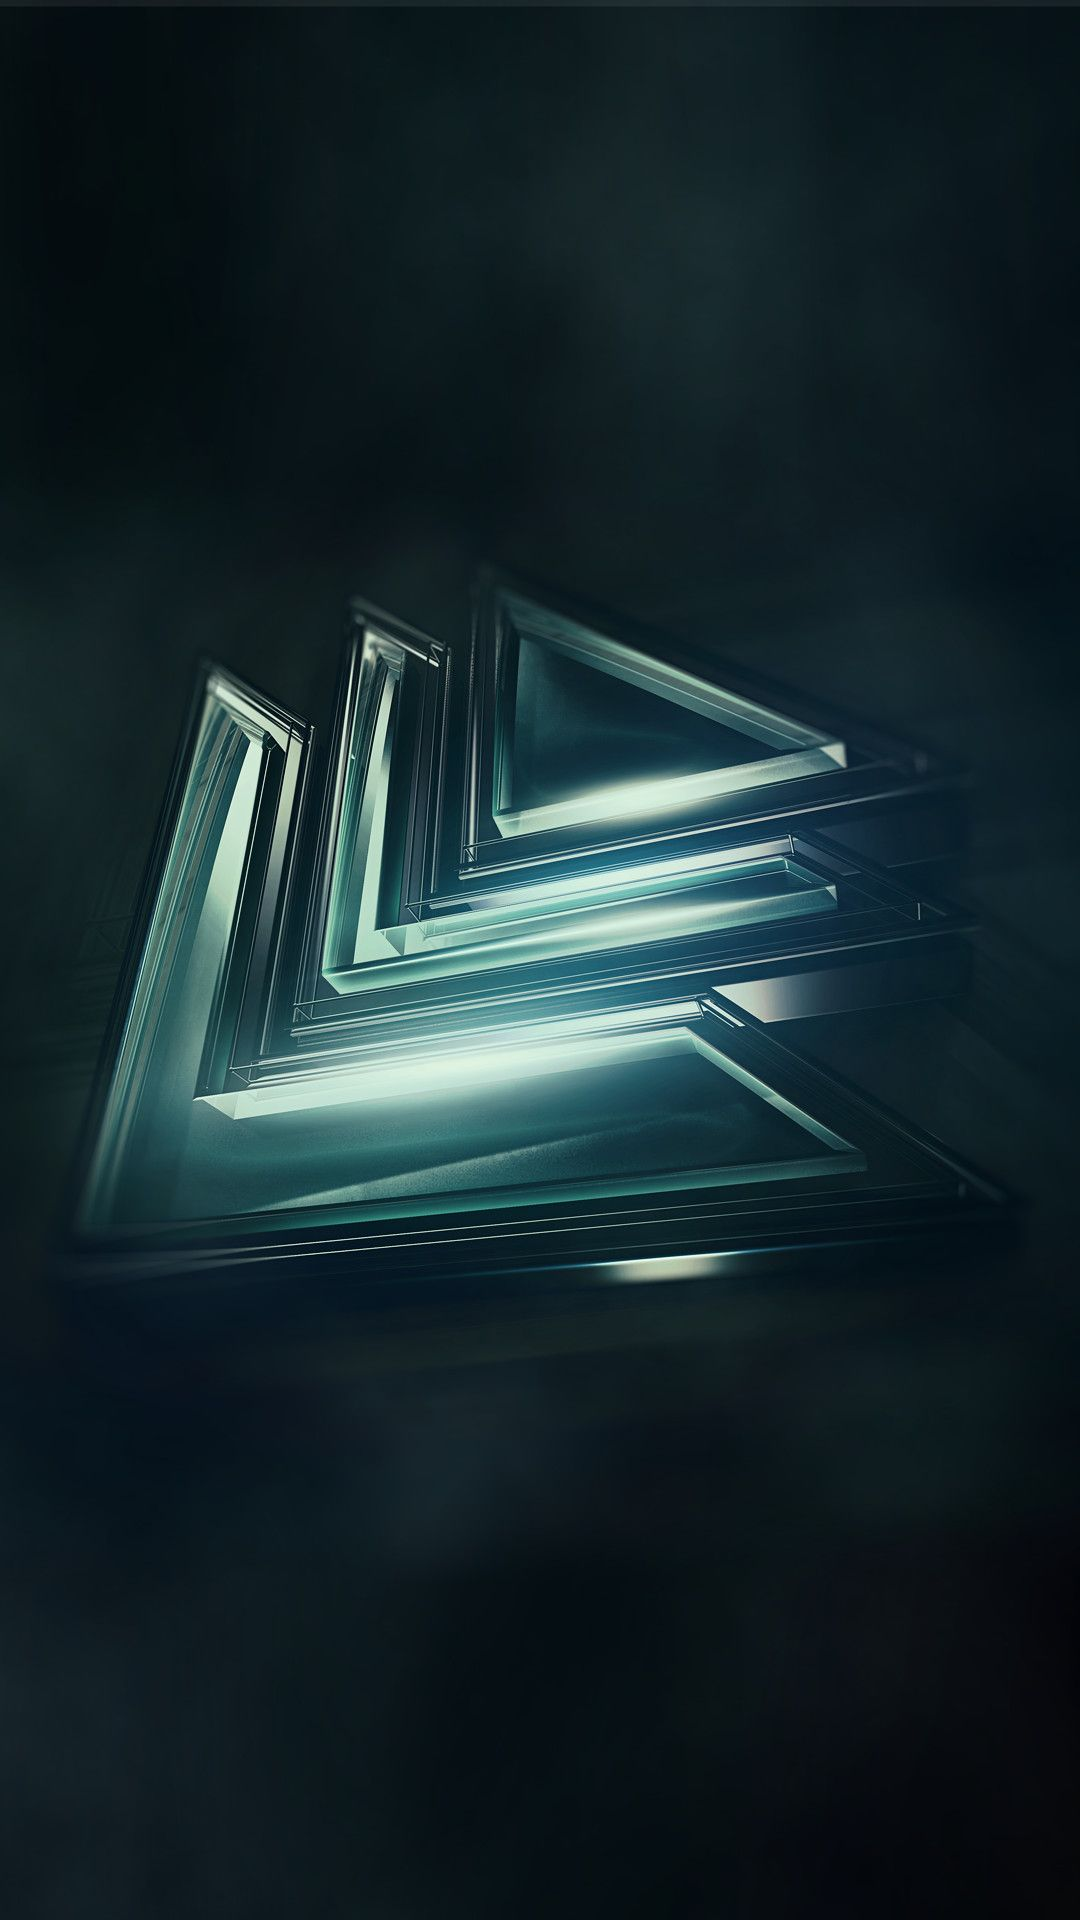 Hardwell Blackout Wallpaper Mobile Computer Wallpaper Wallpaper Phone Wallpaper